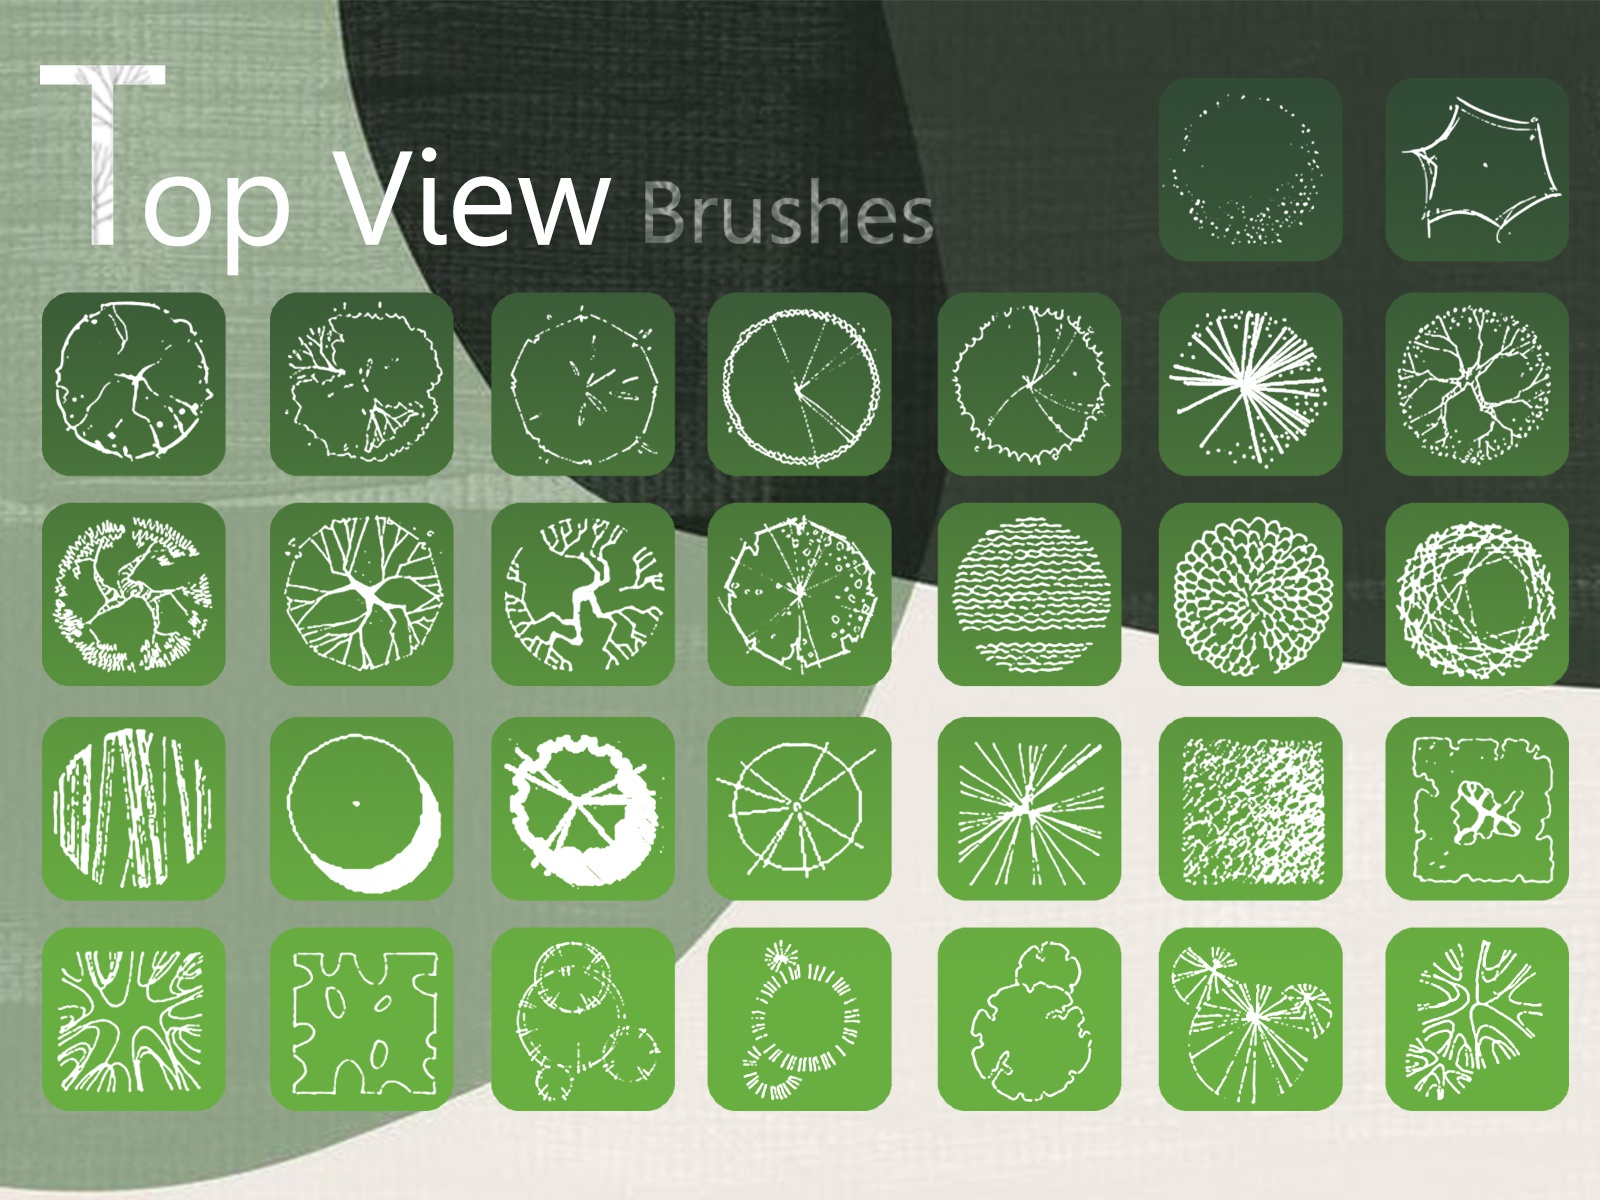 trees top view brushes for landscape design by starchi on dribbble trees top view brushes for landscape